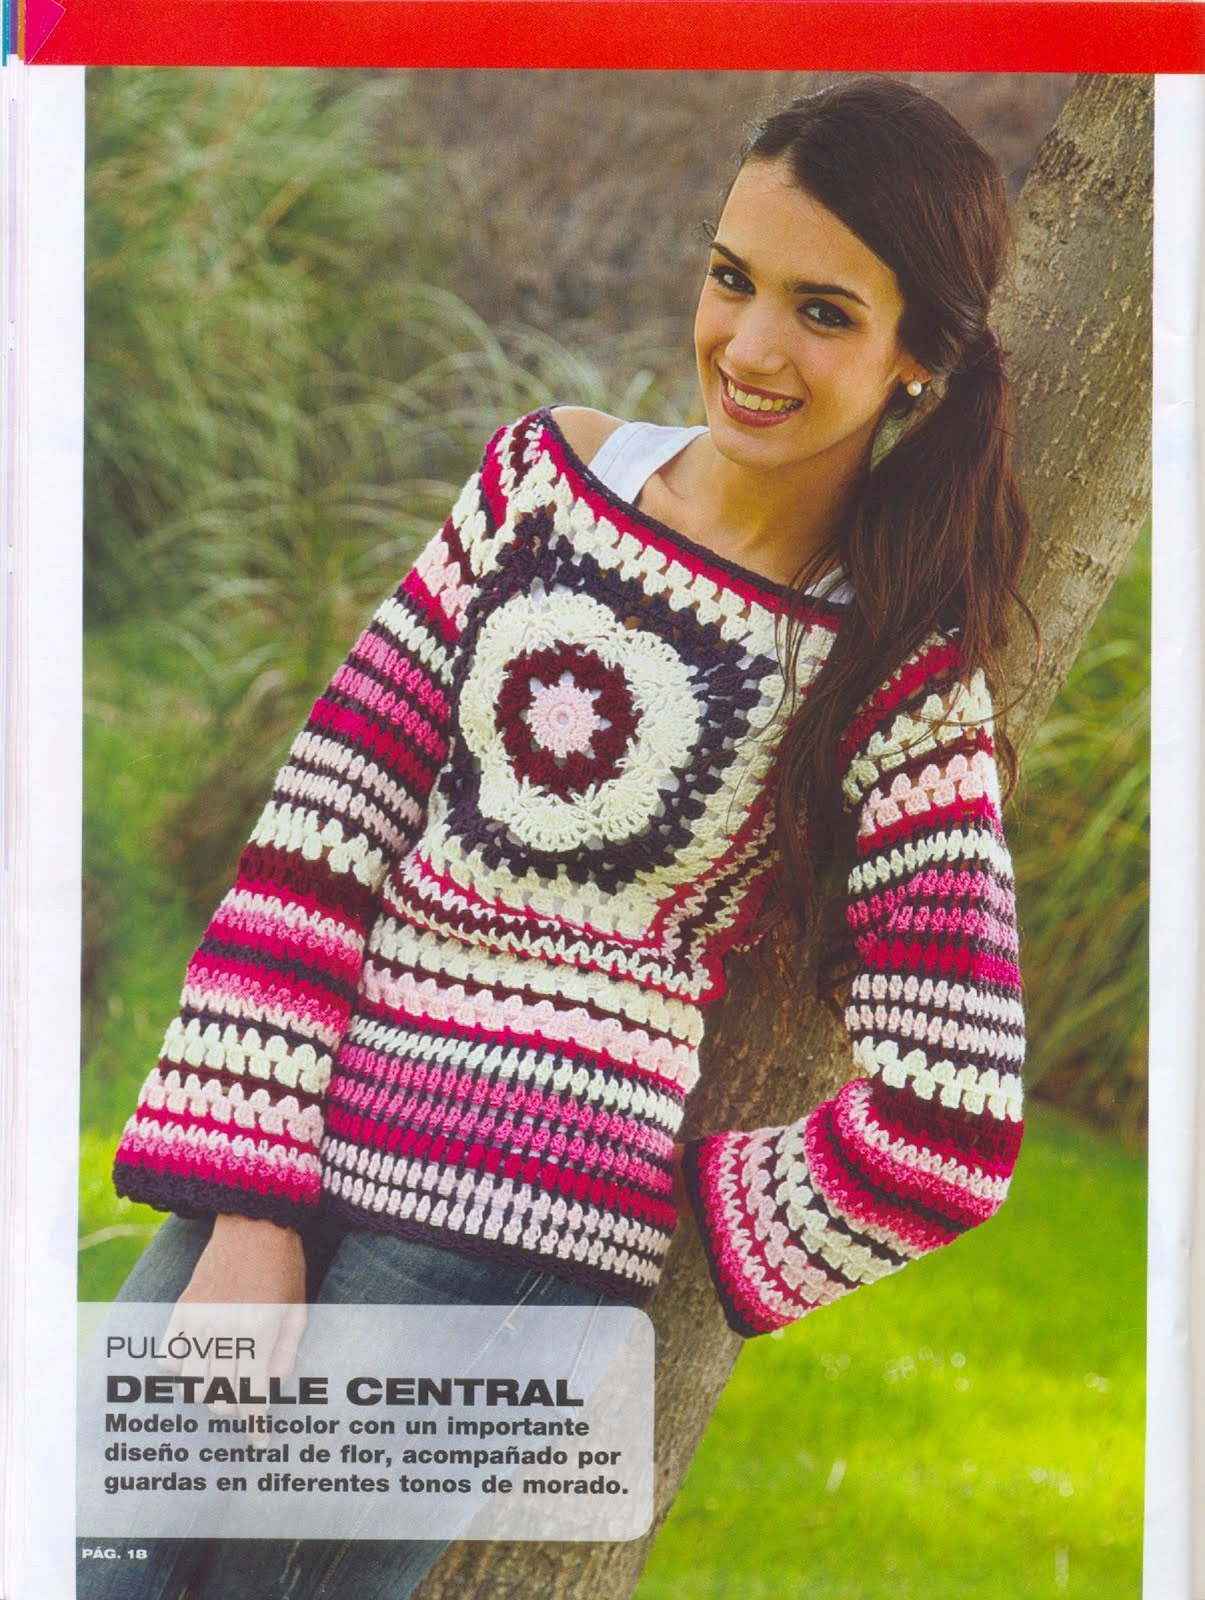 Jersey Pulover de Colores Crochet Patron